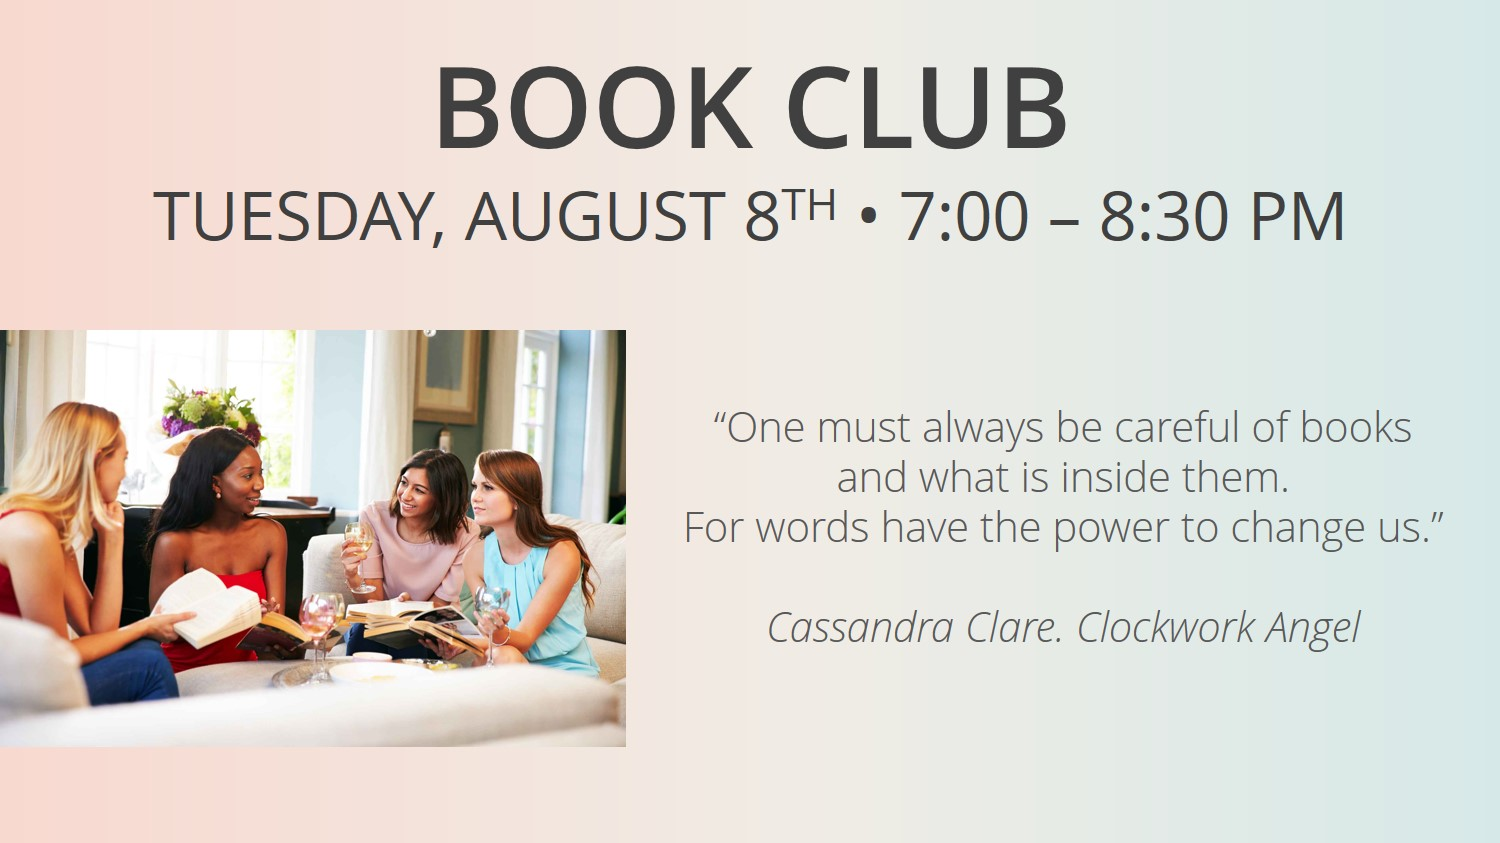 Are You Interested In Sharpening Your Saw And Joining Our Book Club?